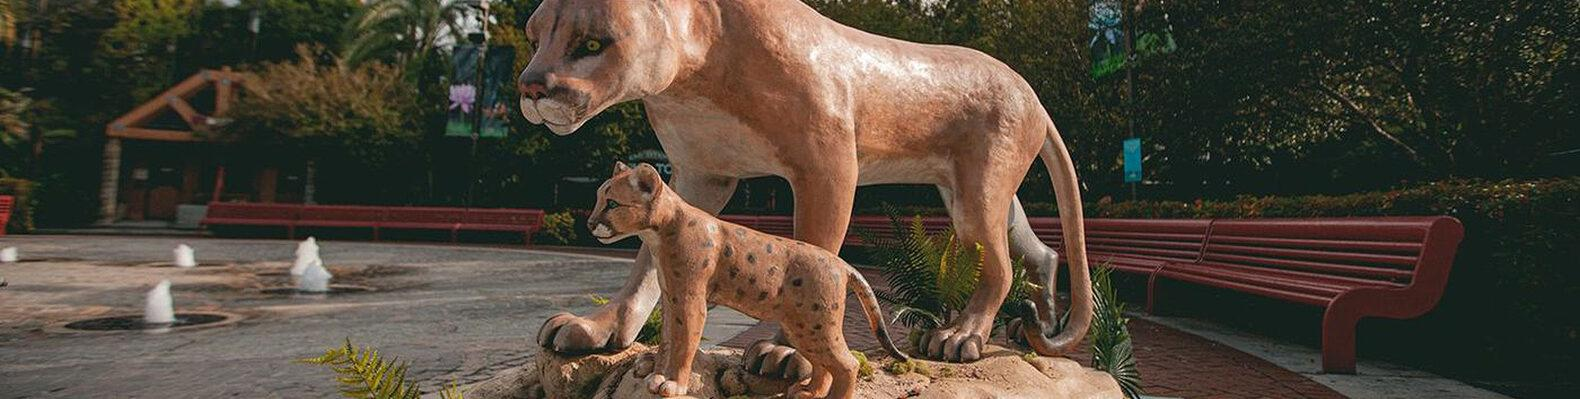 wax sculpture of Florida panther and panther cub